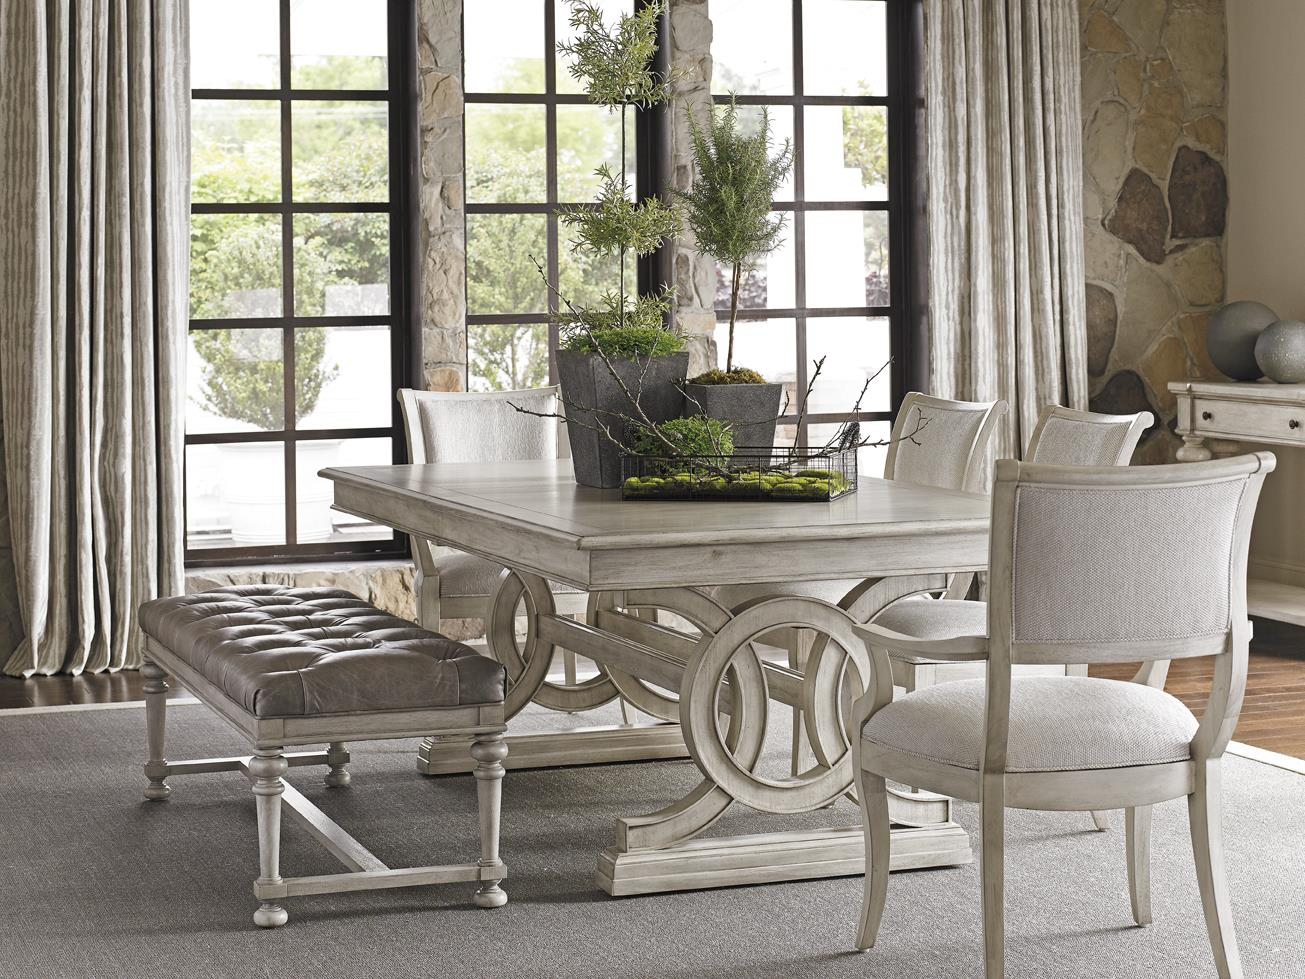 Collections lexington oyster bay 714 714 drp - Lexington oyster bay bedroom furniture ...